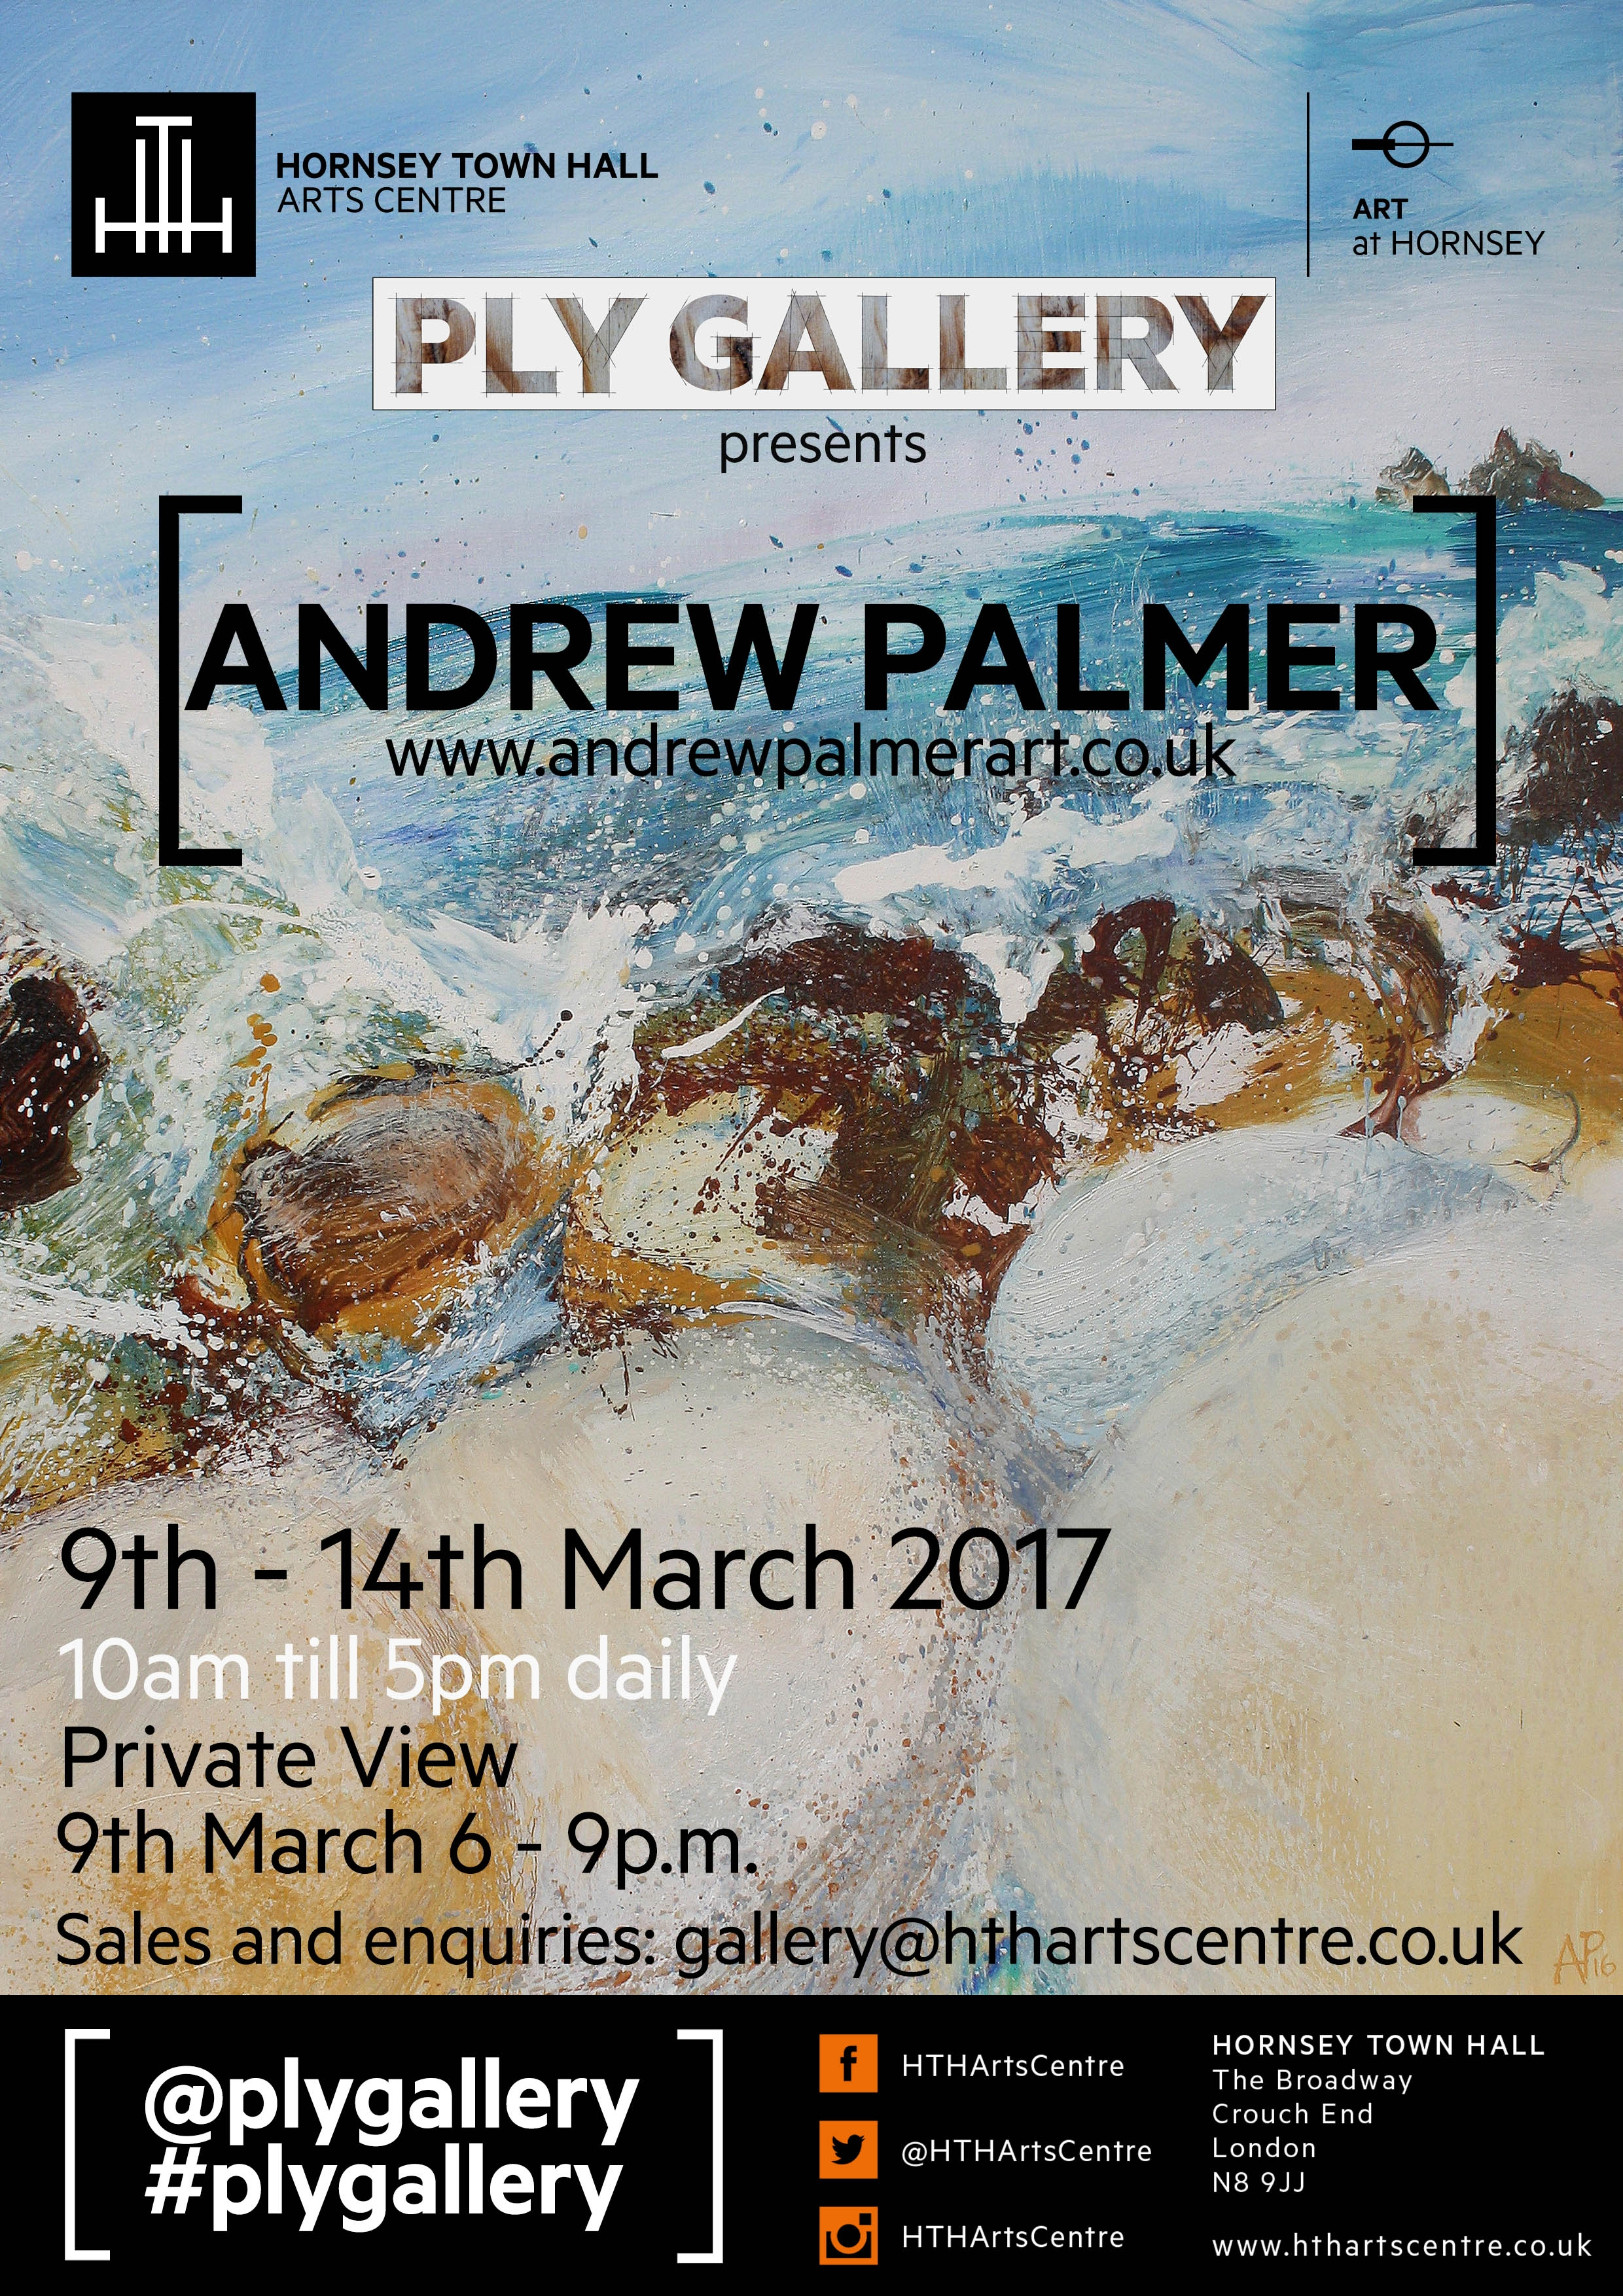 Andrew Palmer @ Ply Gallery March 9-14 2017